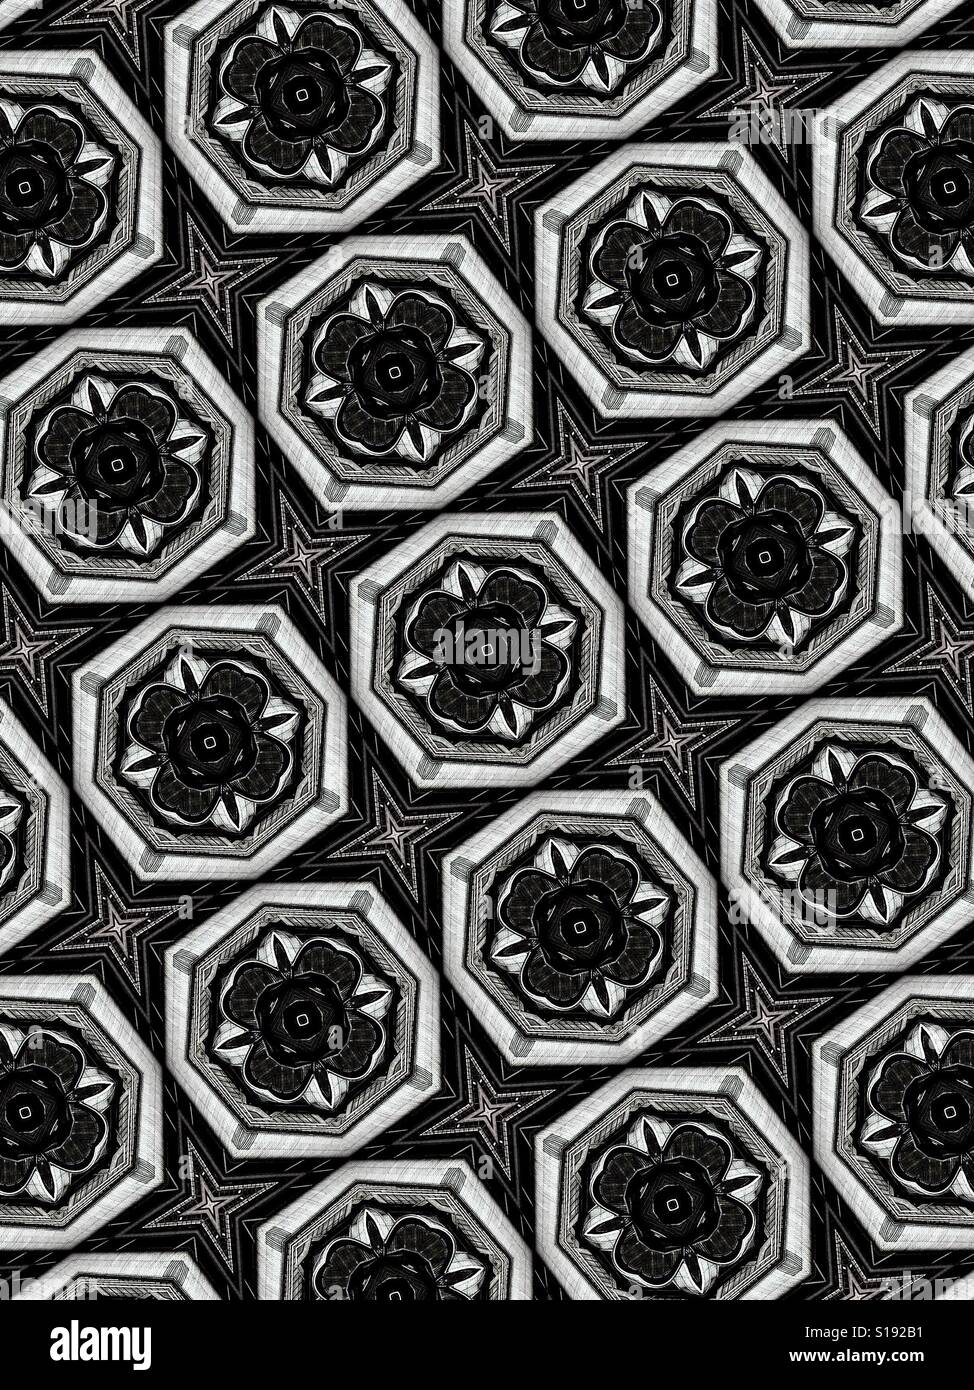 An abstract geometric black and white pattern of interconnected shapes - Stock Image